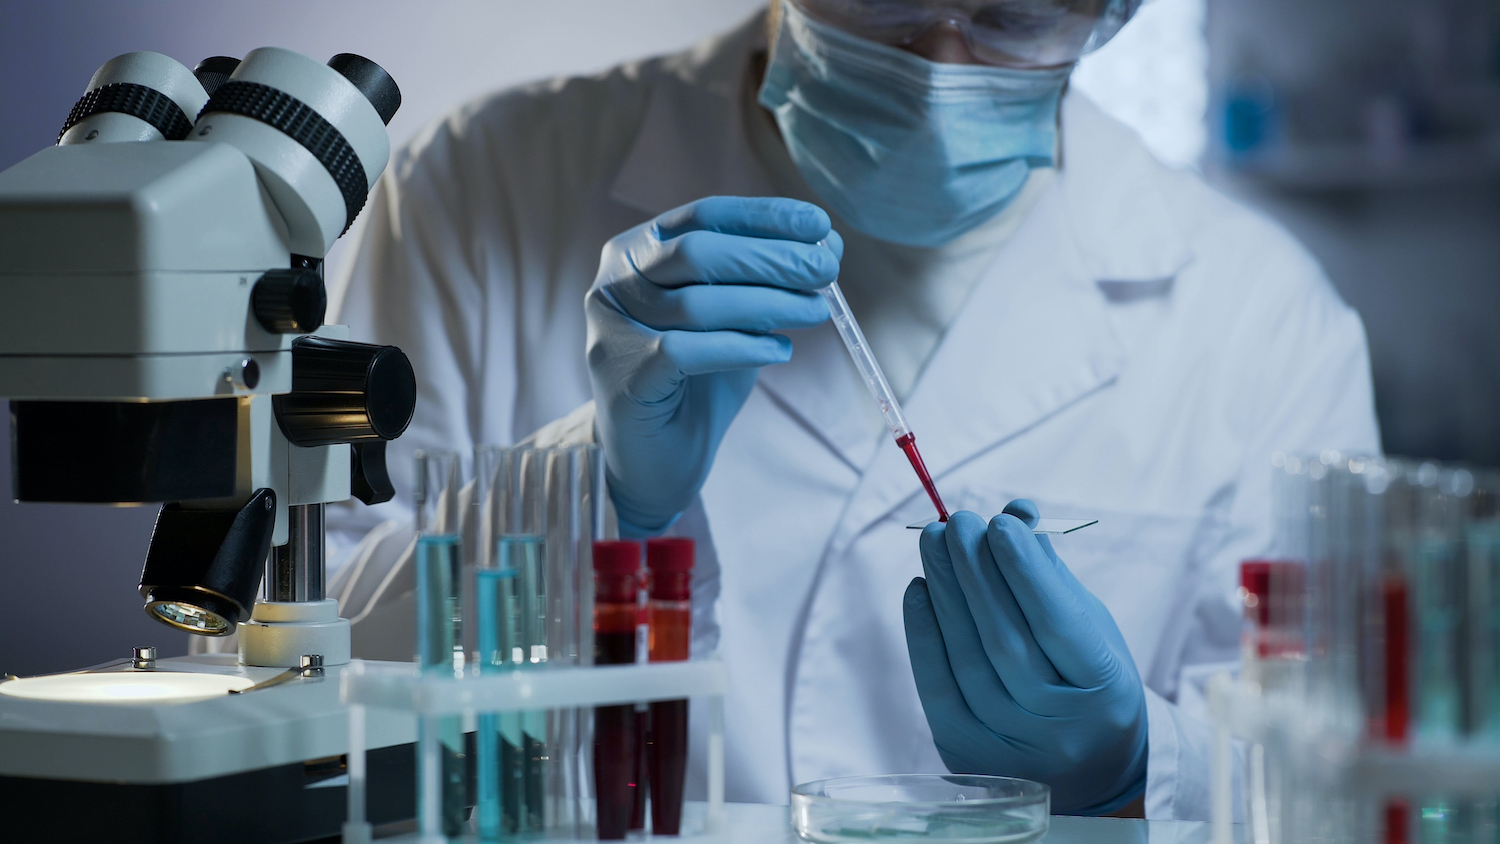 lab technician at work in a hospital laboratory